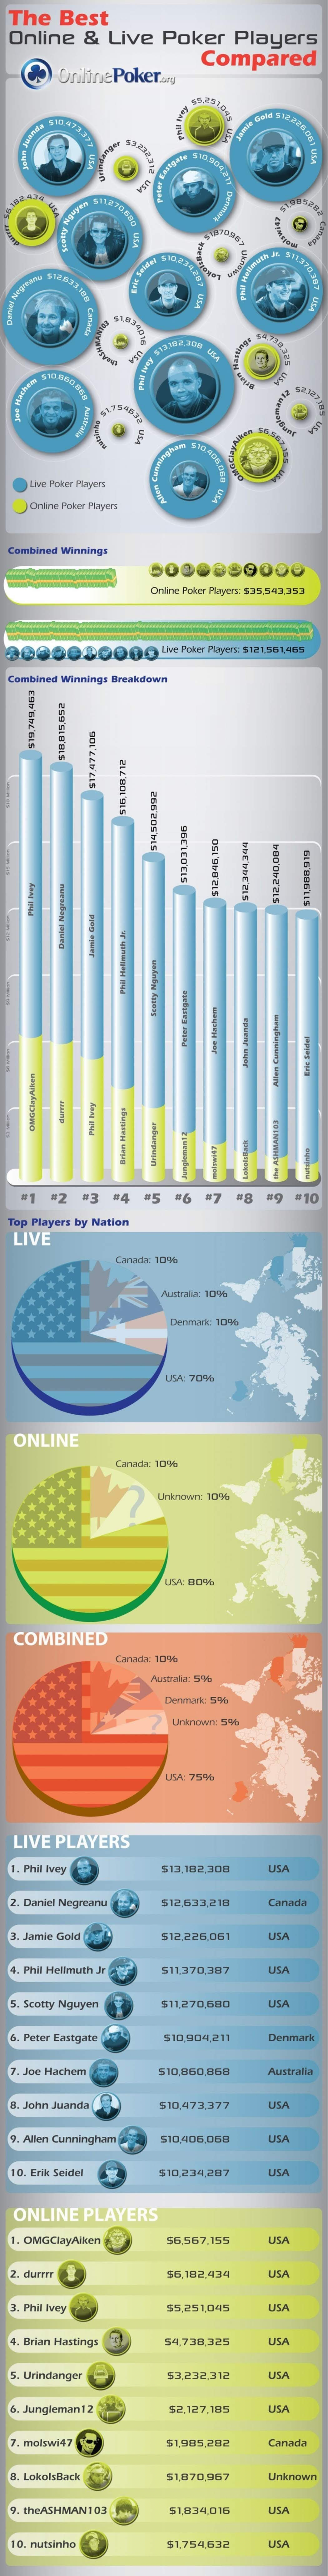 The Best Online Poker Vs Live Poker players Compared #infographic